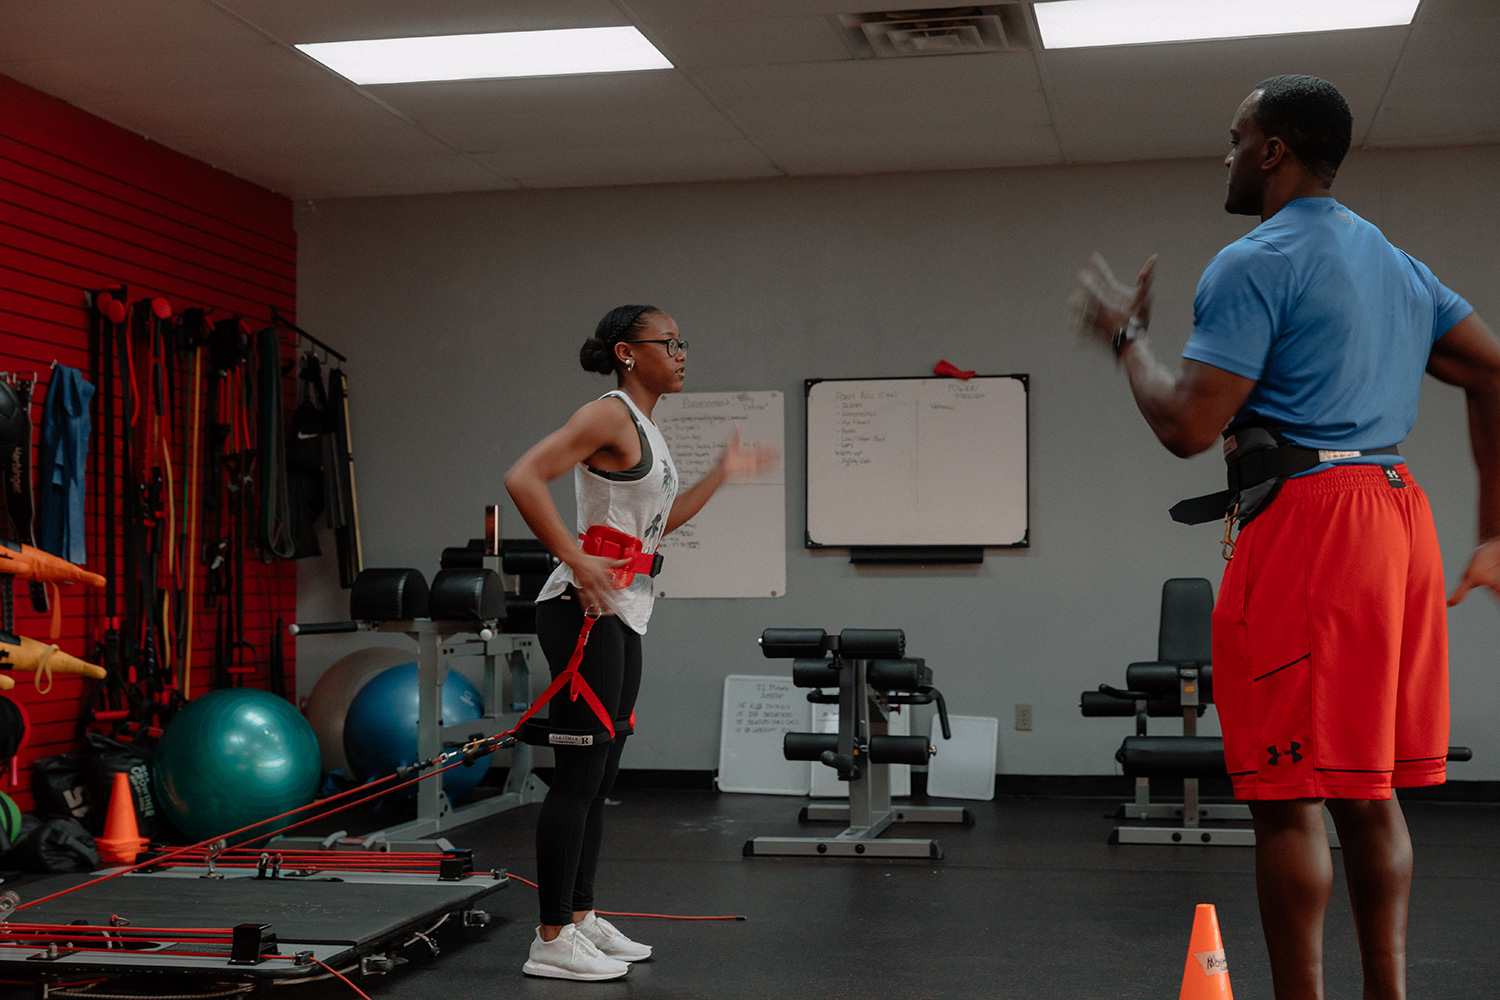 James A. Callins, CSCS helping a student athlete through strength training